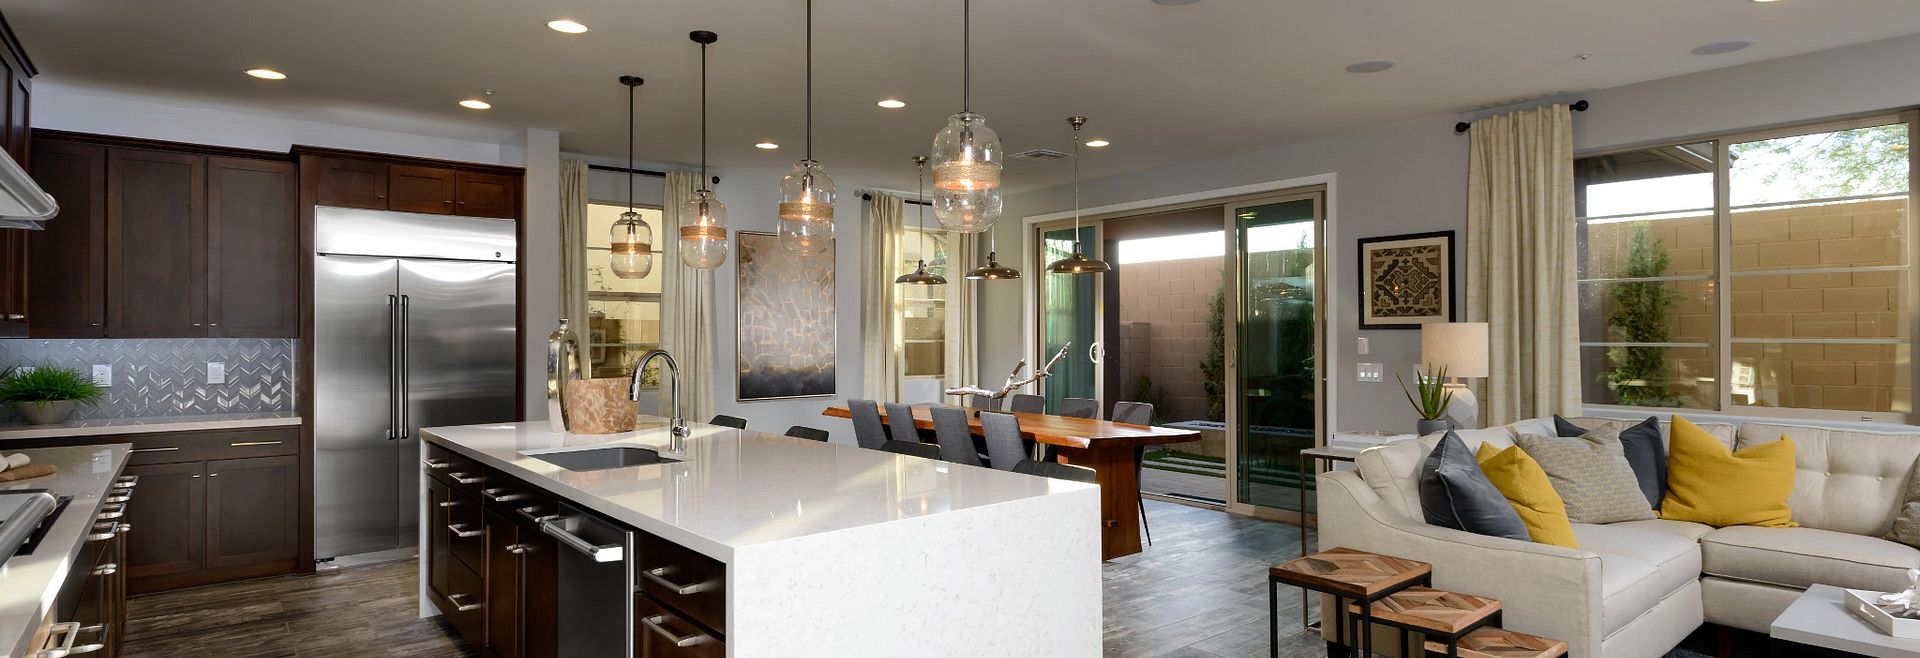 Polaris Plan Kitchen and Dining Space